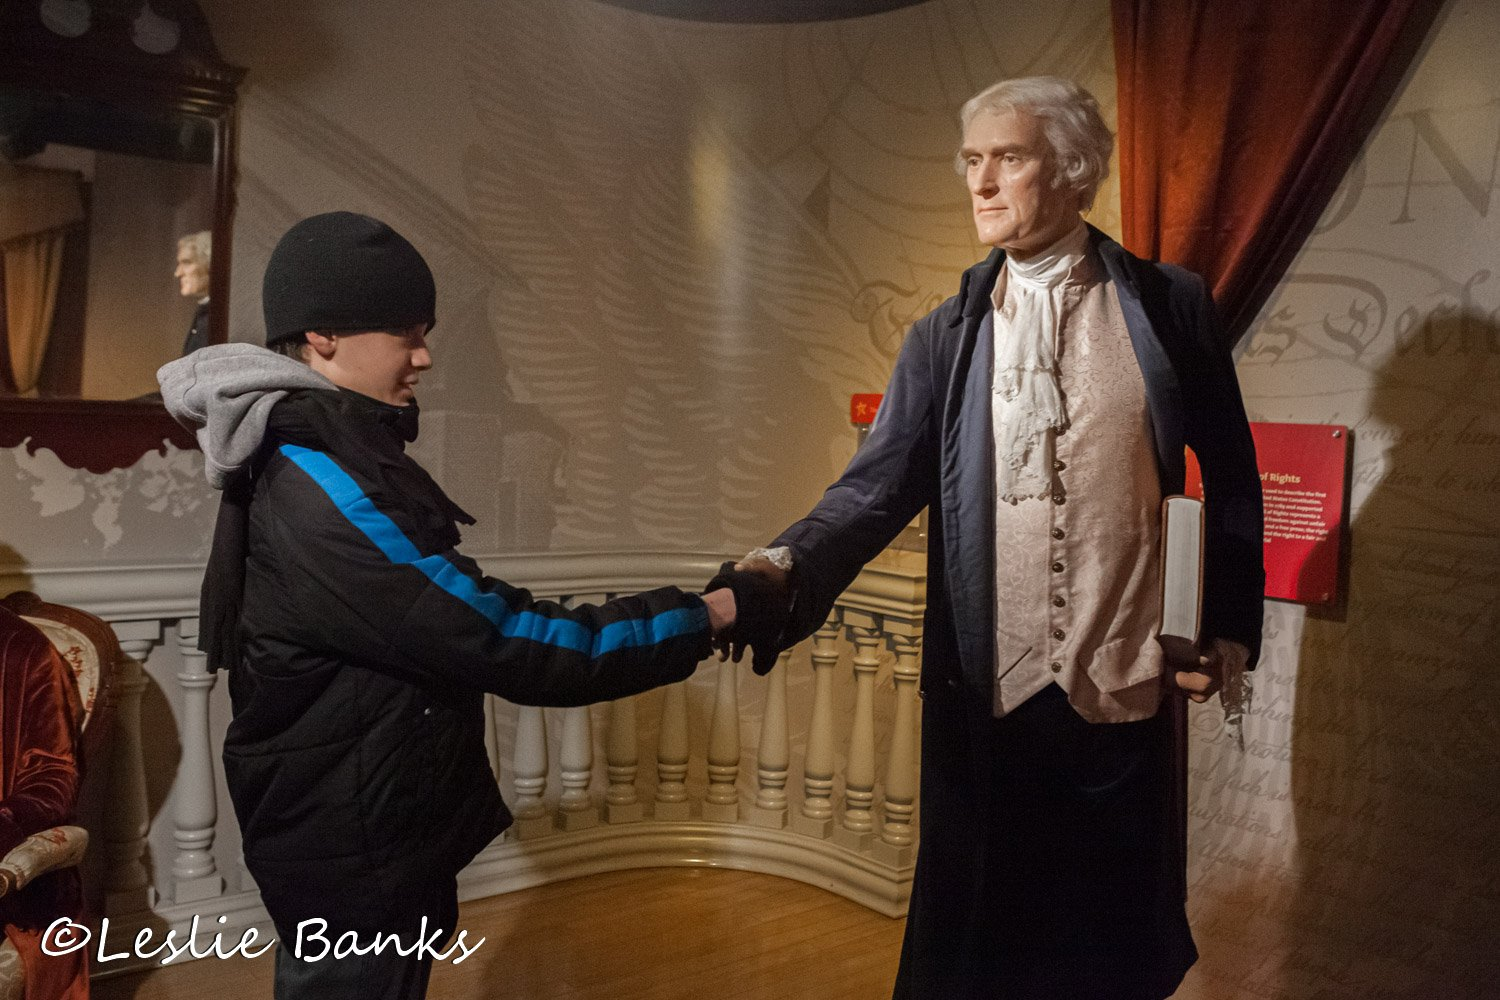 Shaking Hands with Thomas Jefferson